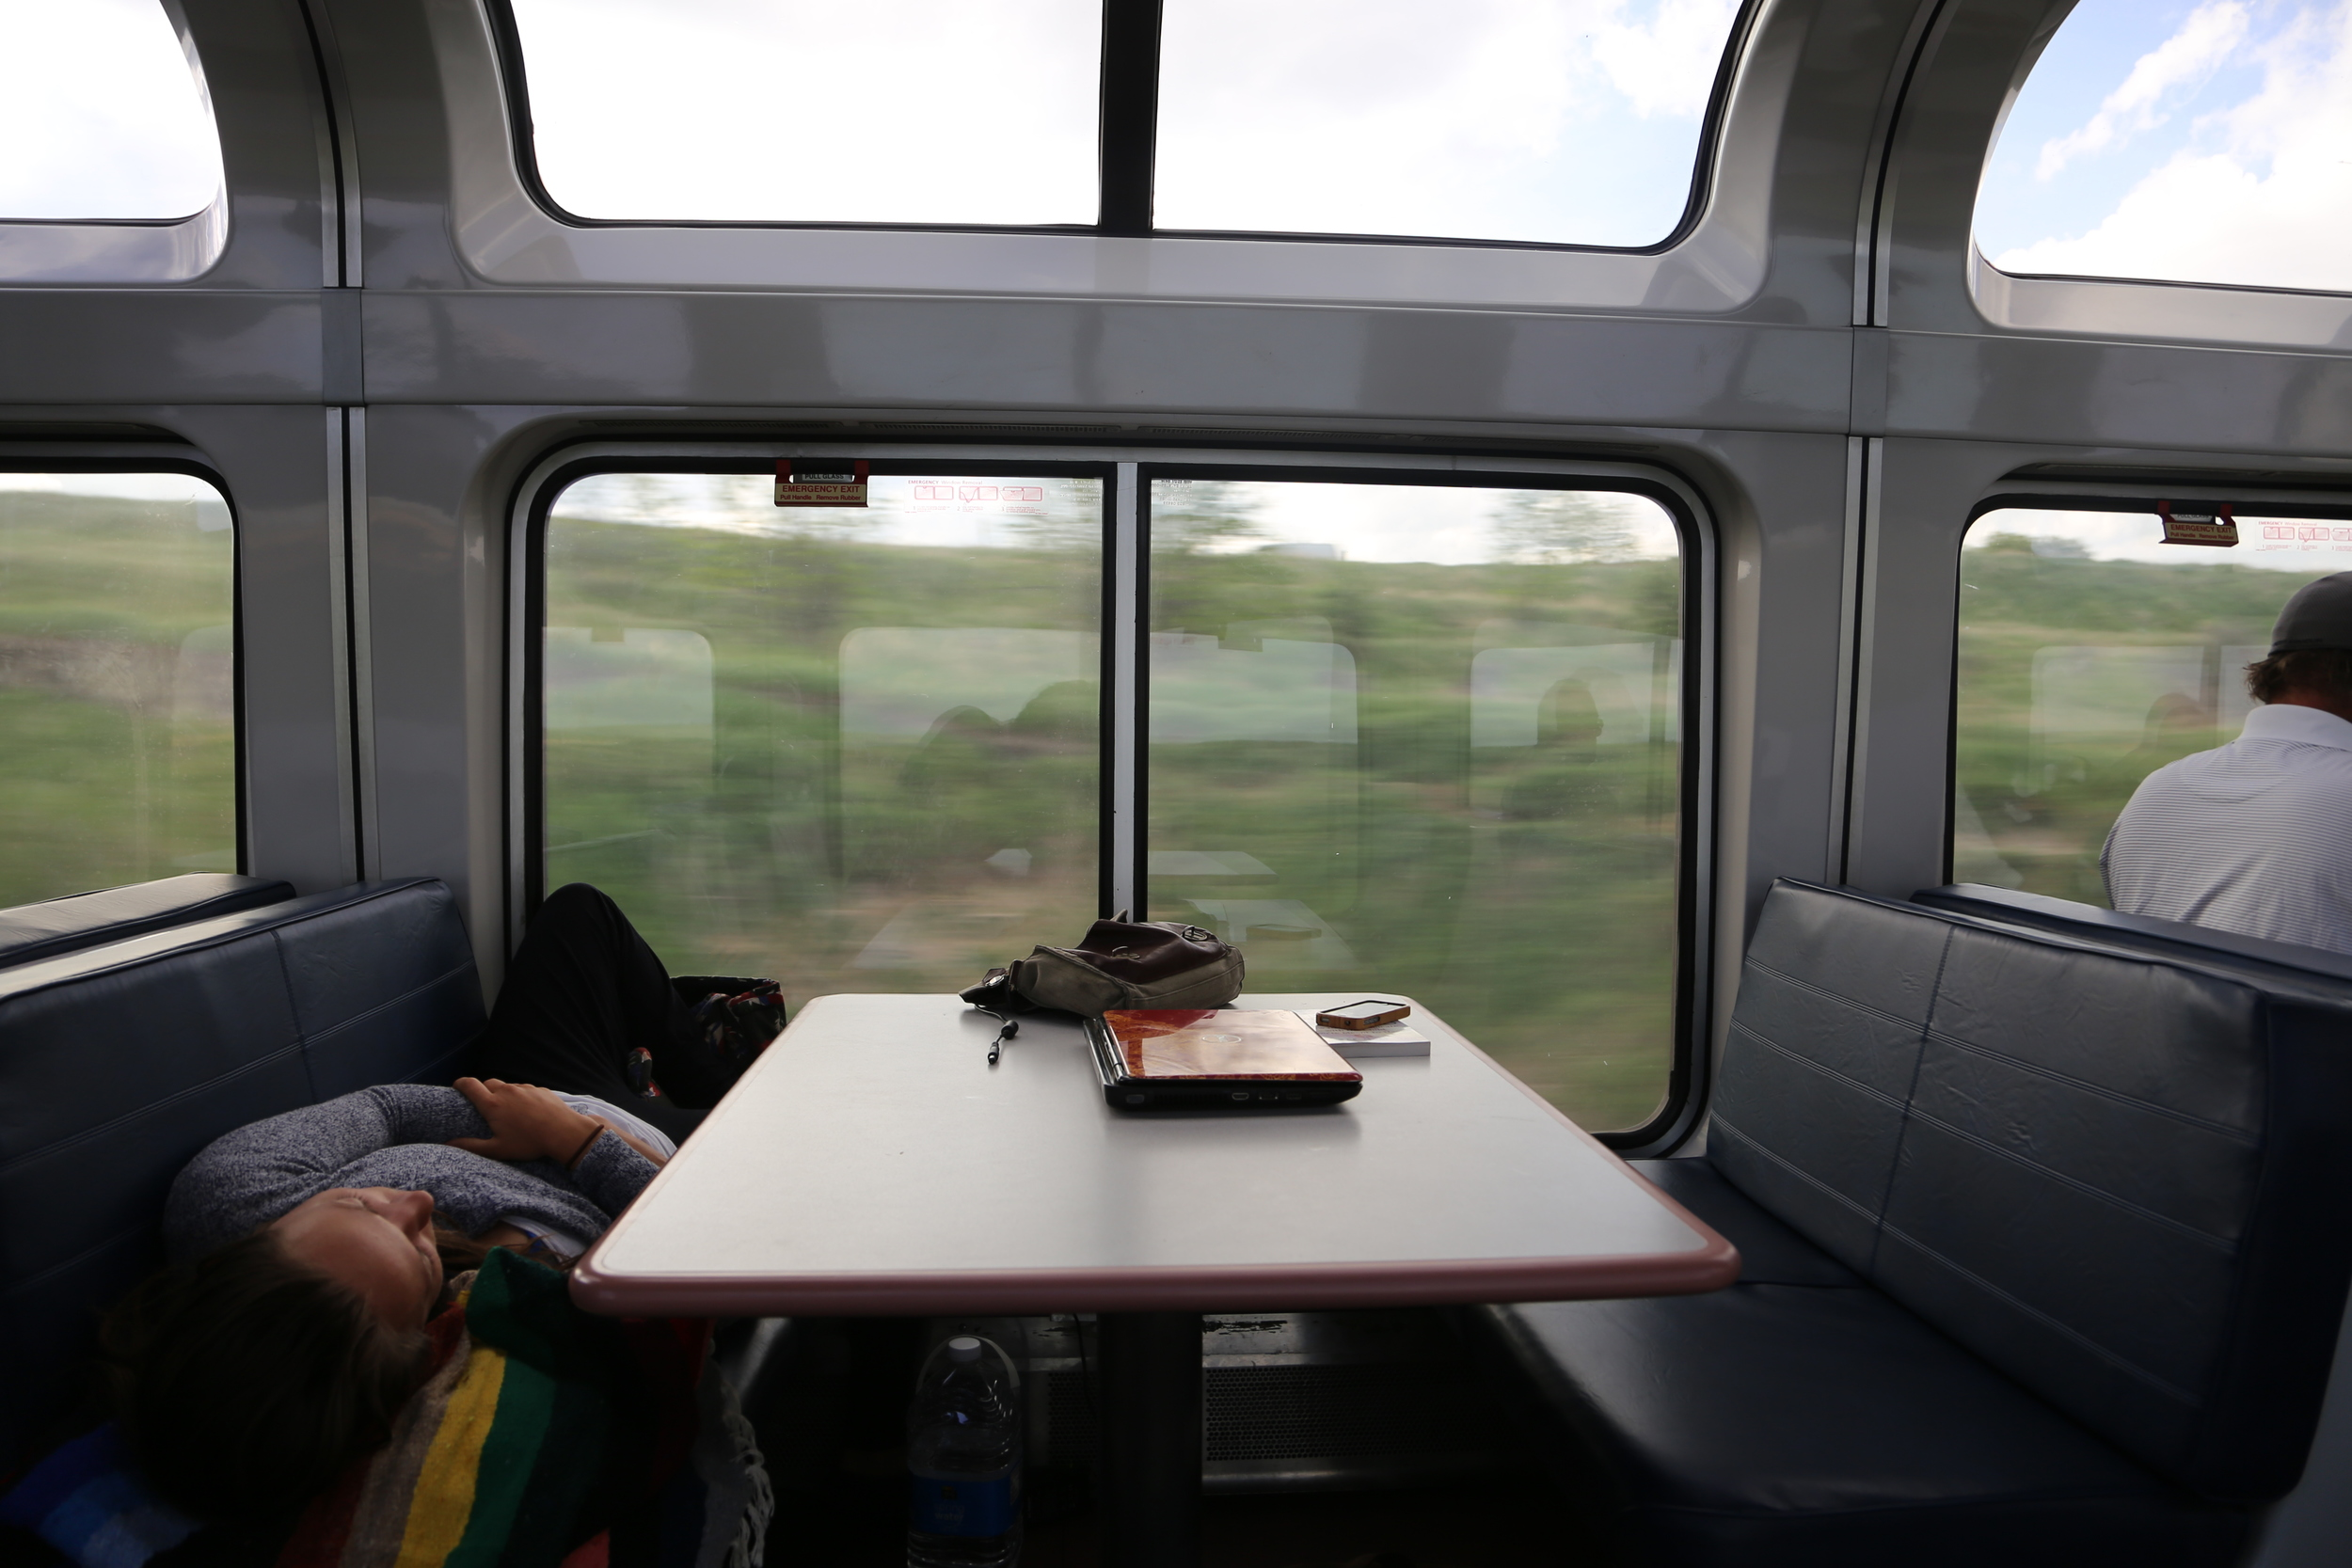 Nap time on the train